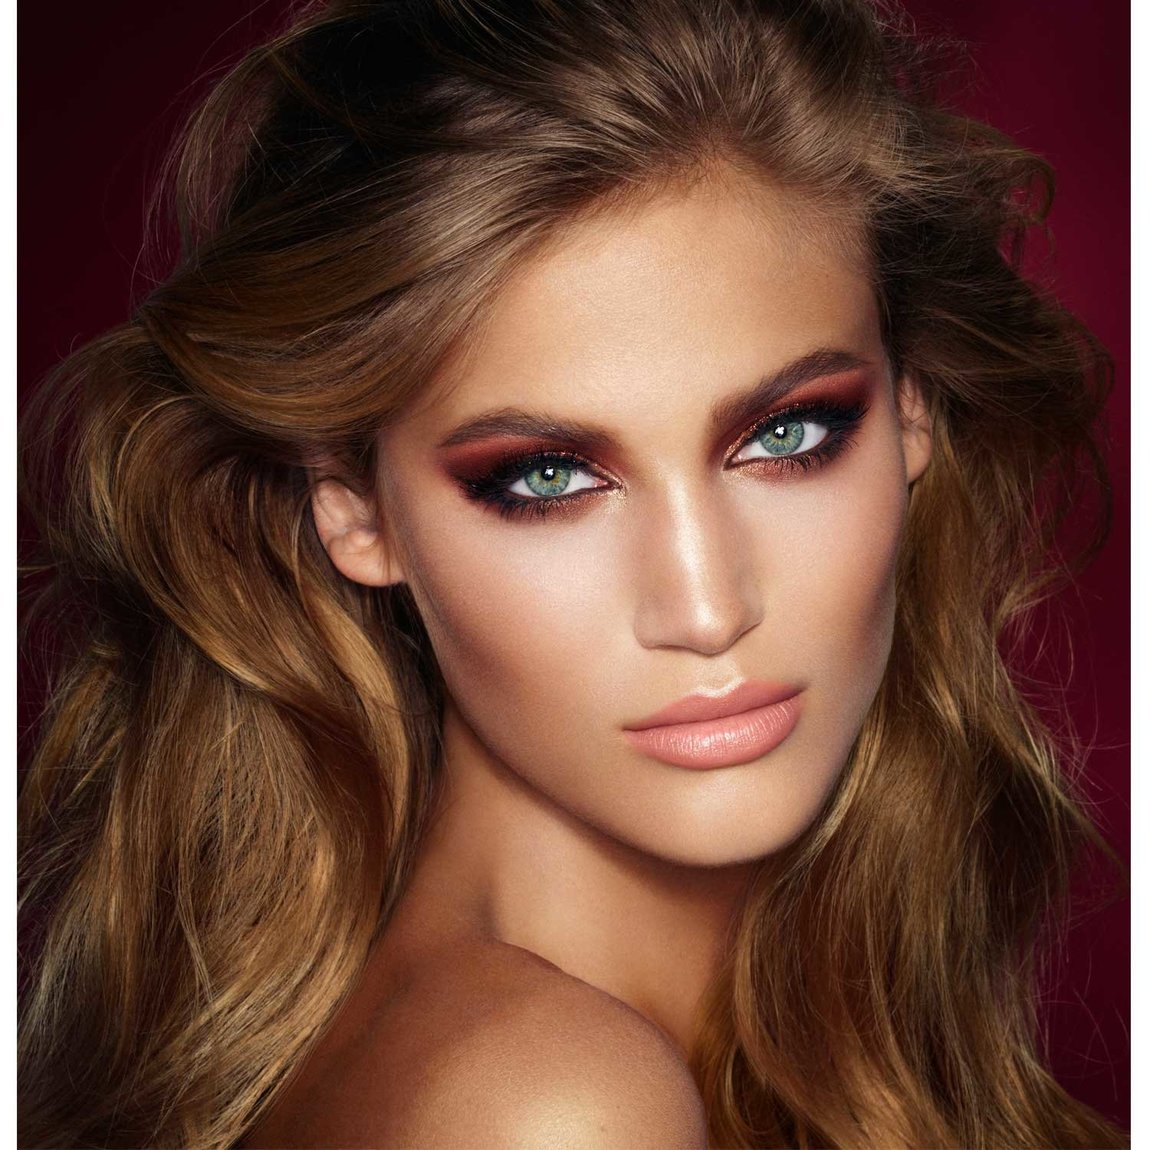 Charlotte Tilbury Get the Look The Bella Sofia (Previously The Dolce Vita) product smear.